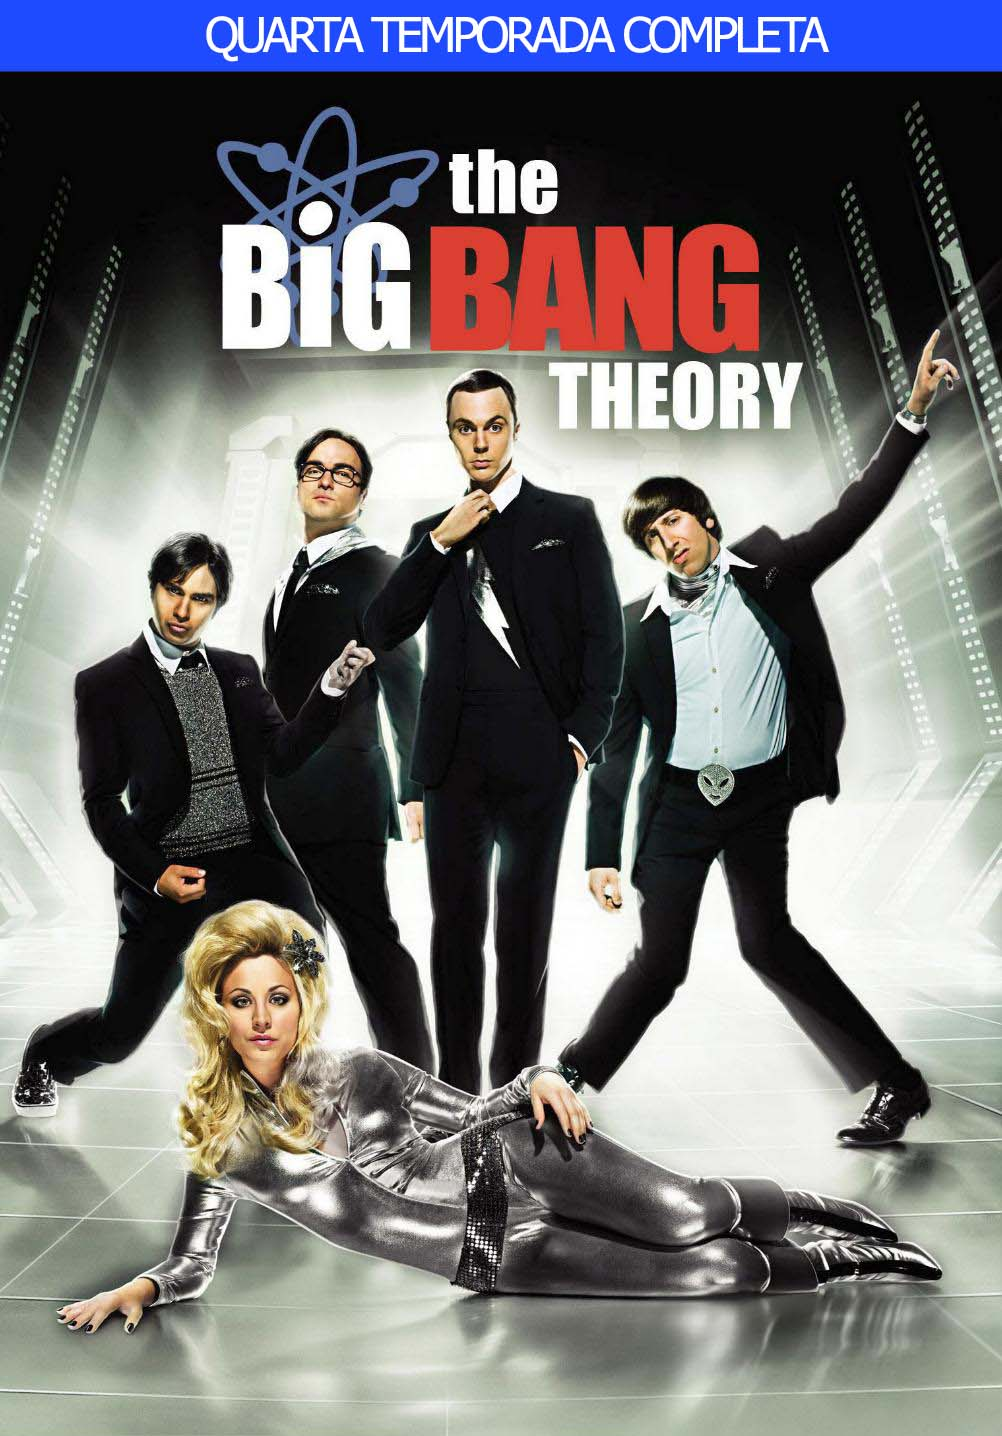 The Big Bang Theory 4ª Temporada Torrent - Blu-ray Rip 720p Dual Áudio (2010)